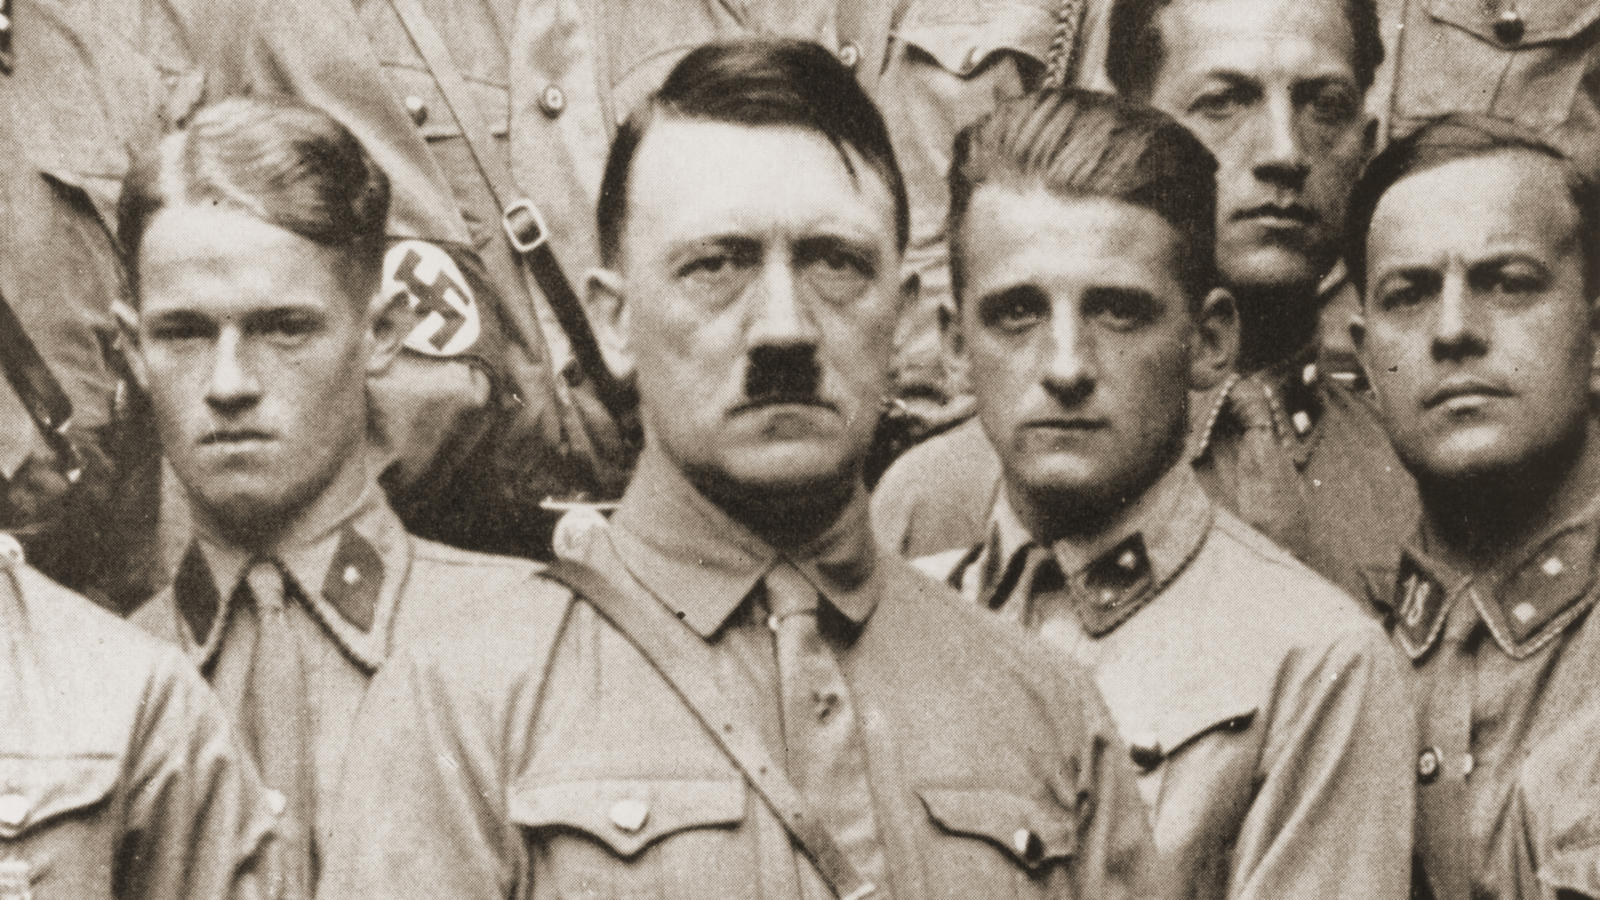 how intregral was hitler the individual